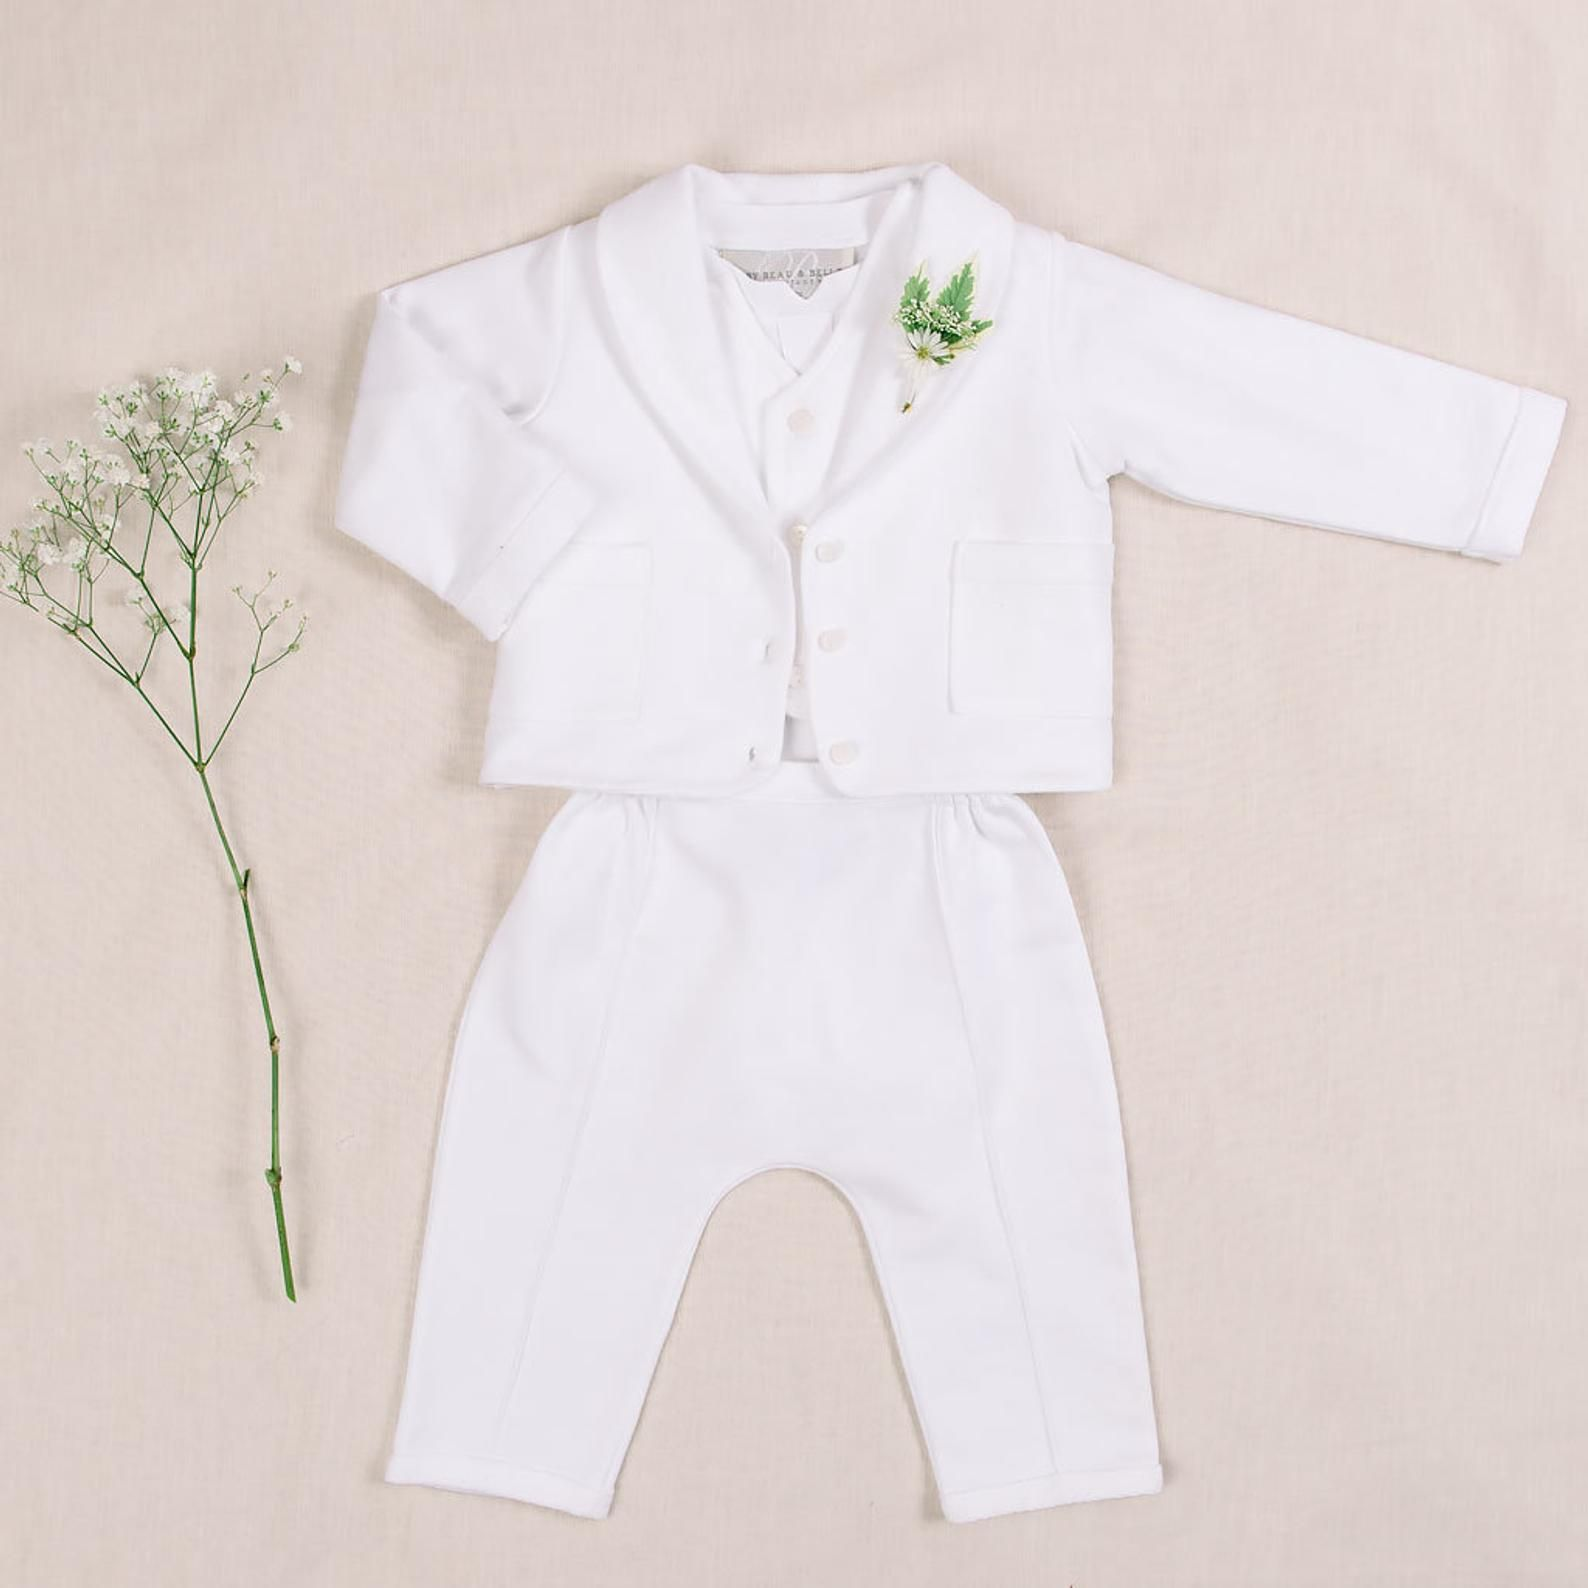 New Baby Boys Infant Christening Baptism White Outfit Set Dedication w// Hat SB